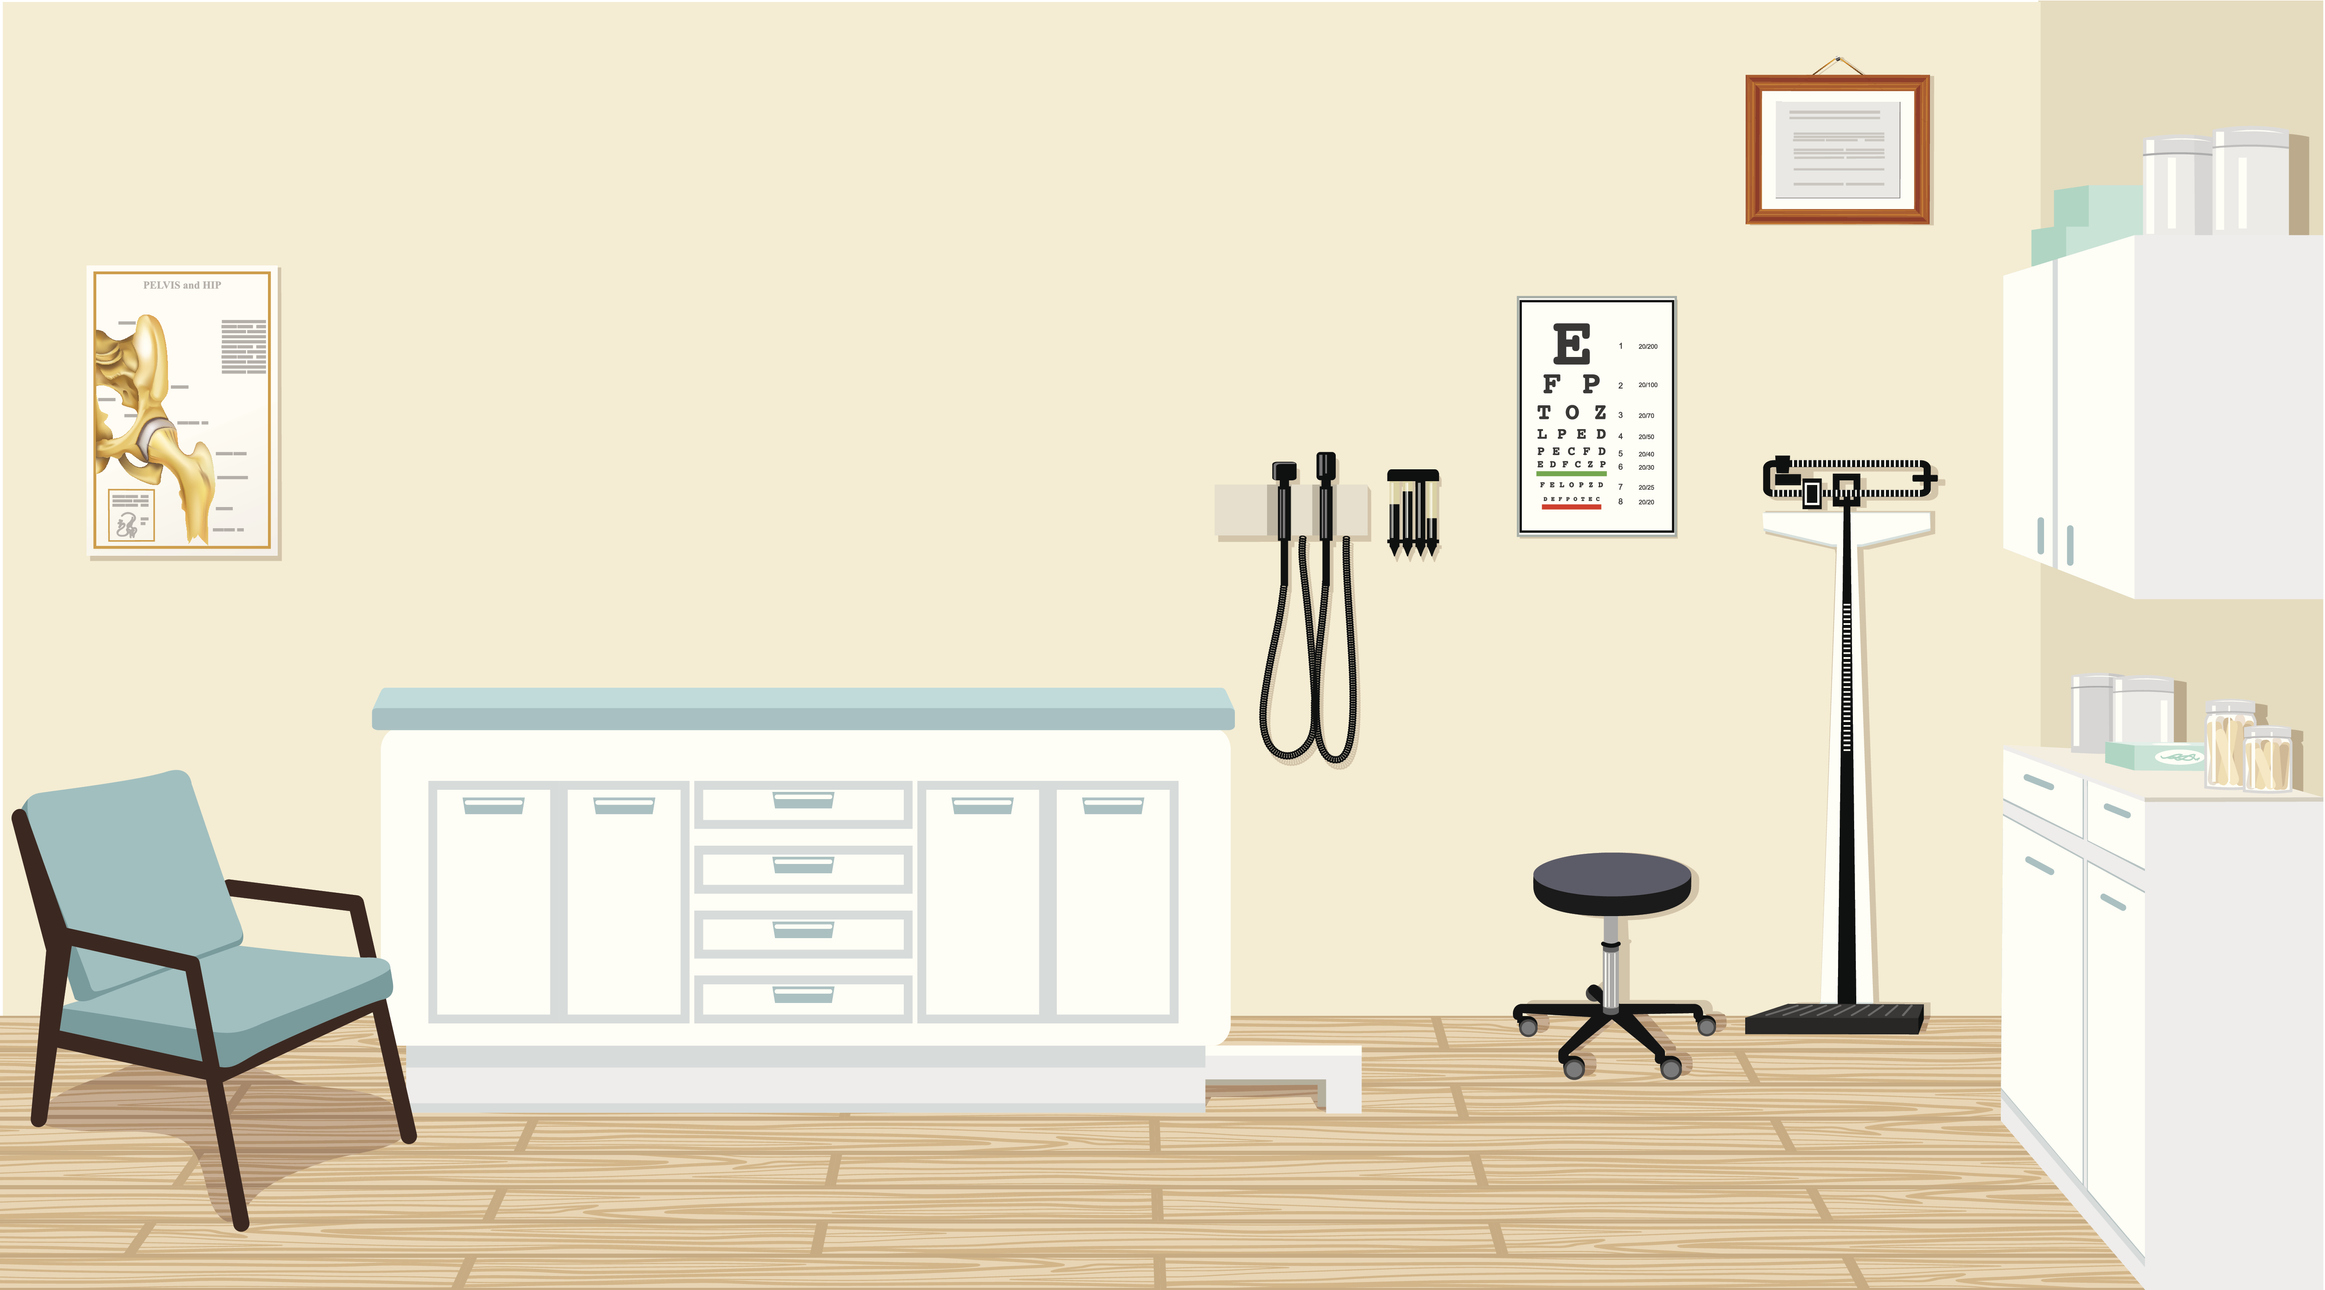 animation of fully furnished exam room and medical equipment